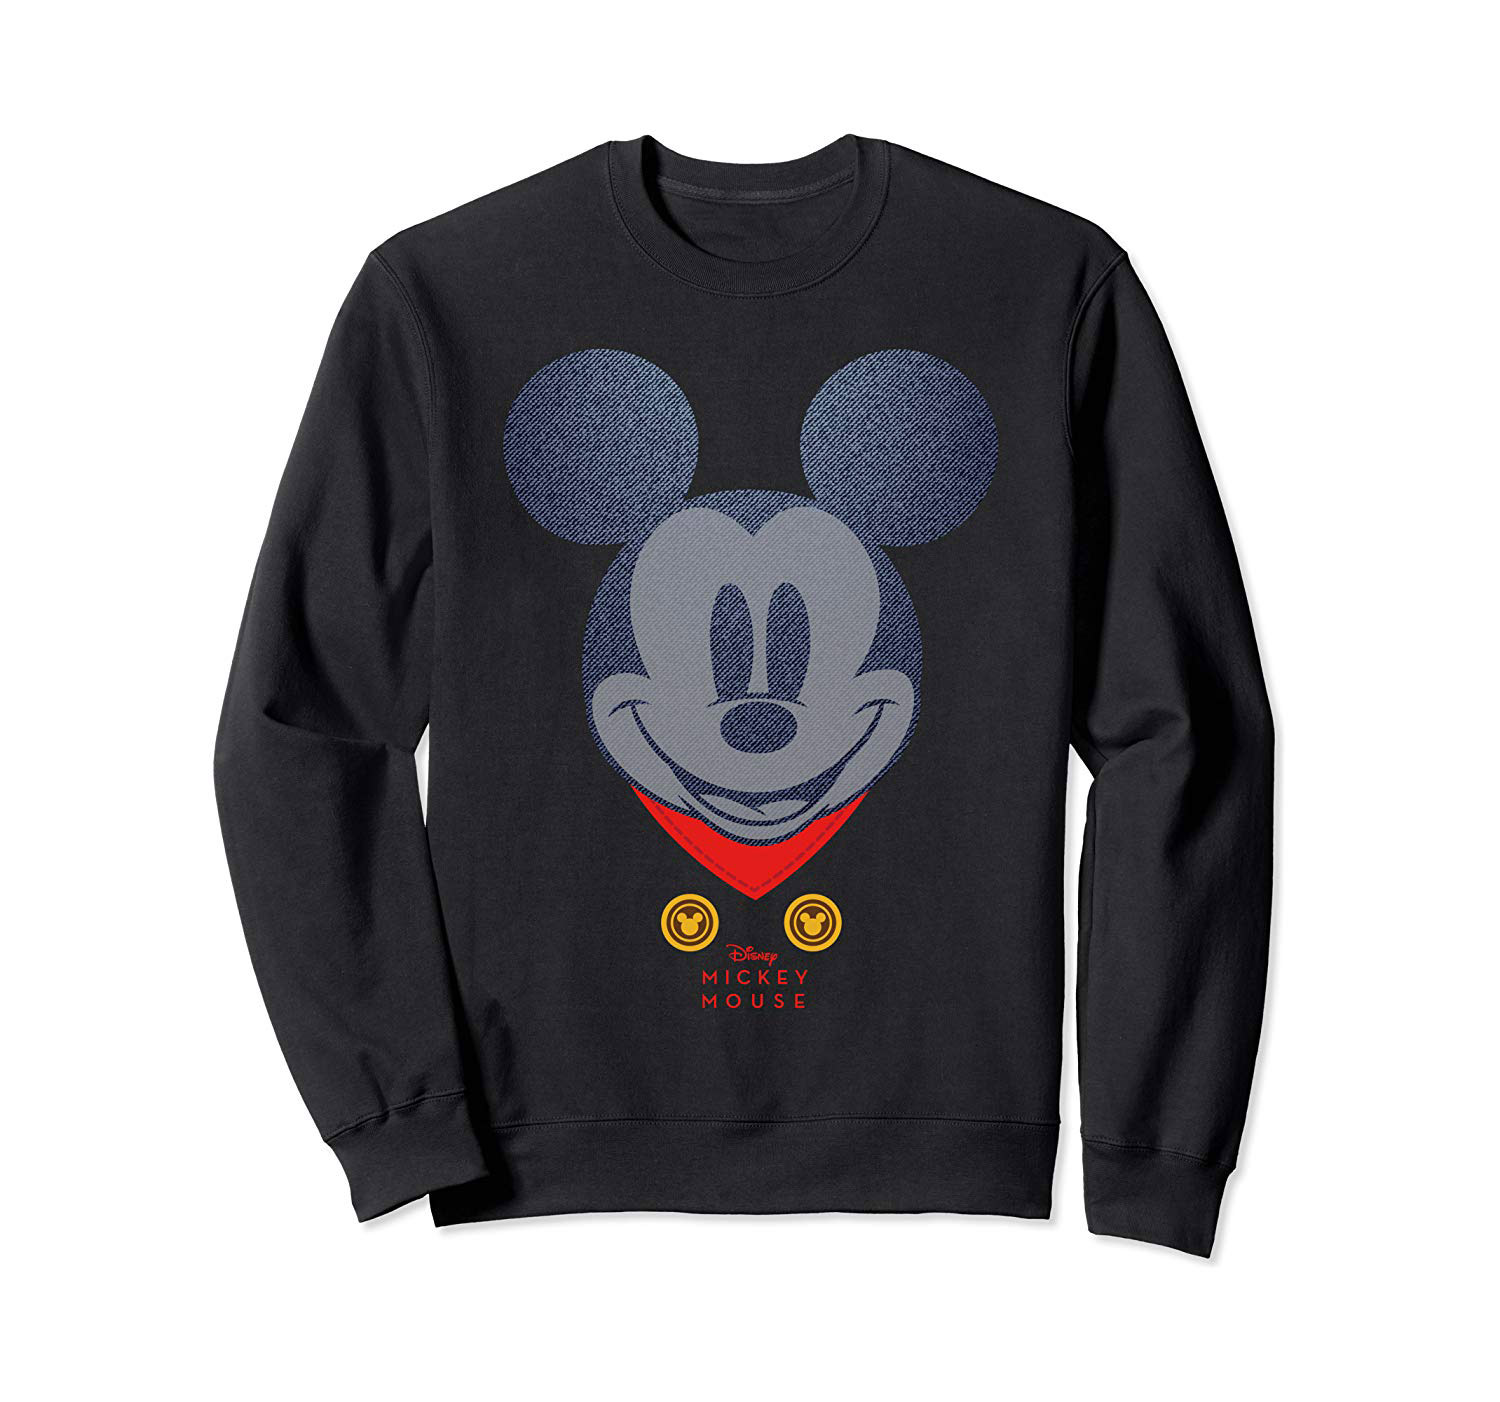 Disney Year of the Mouse March Mickey Mouse Sweatshirt